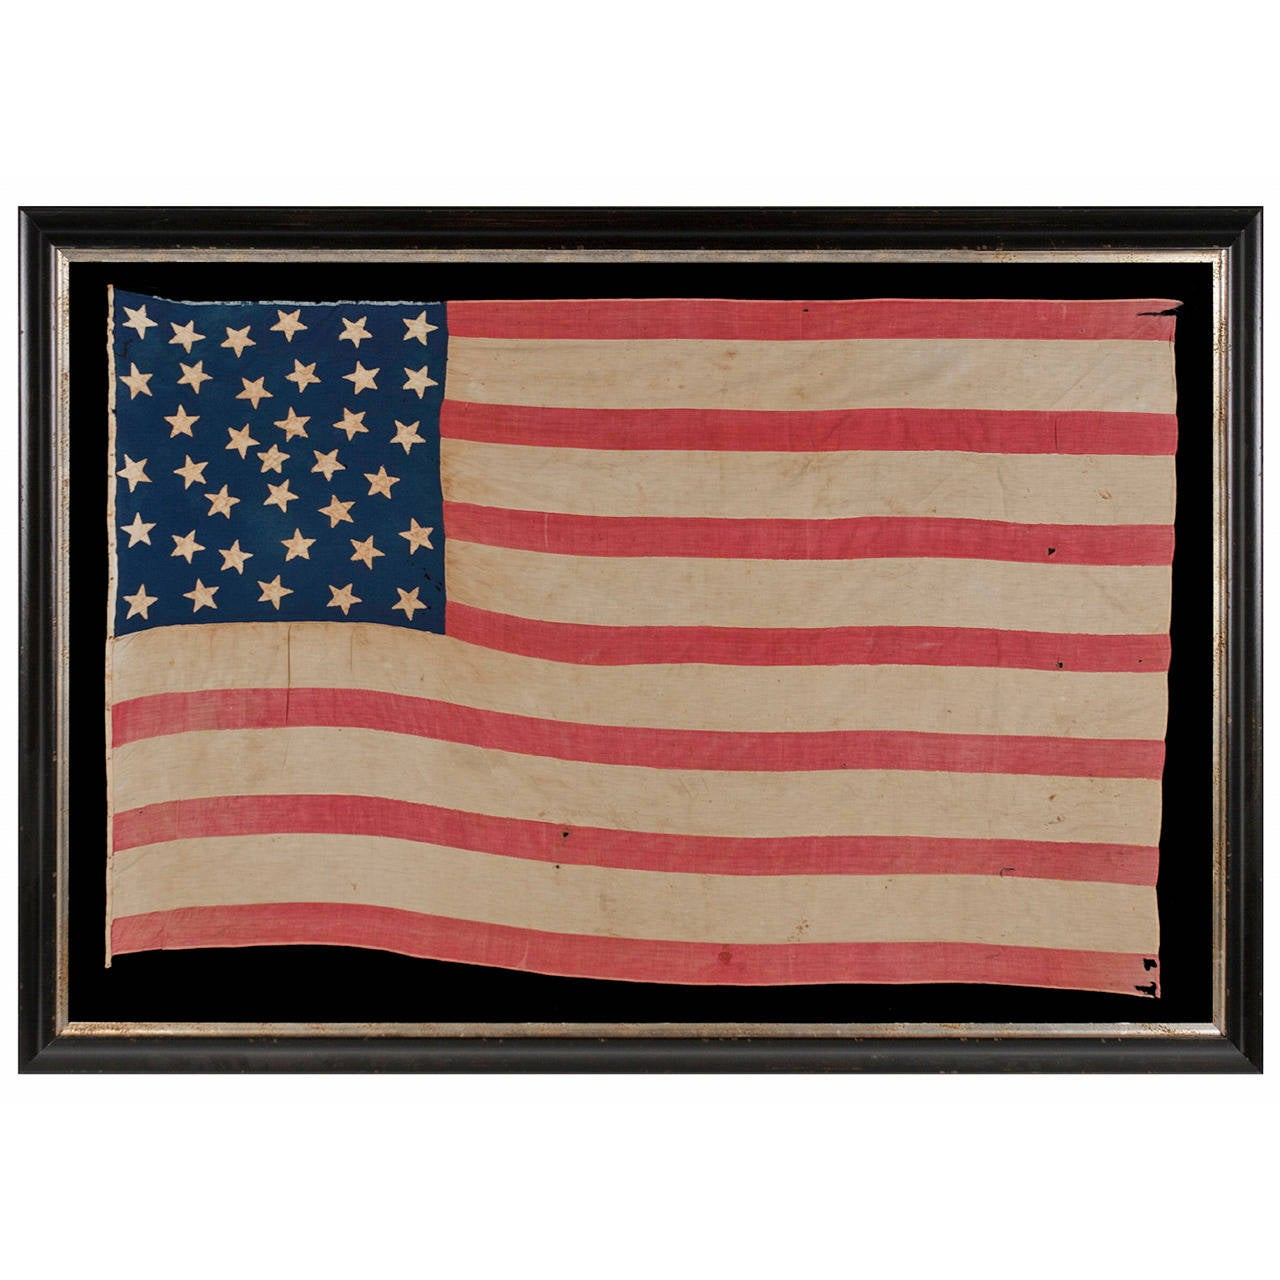 36 Star Homemade Flag of the Civil War Era